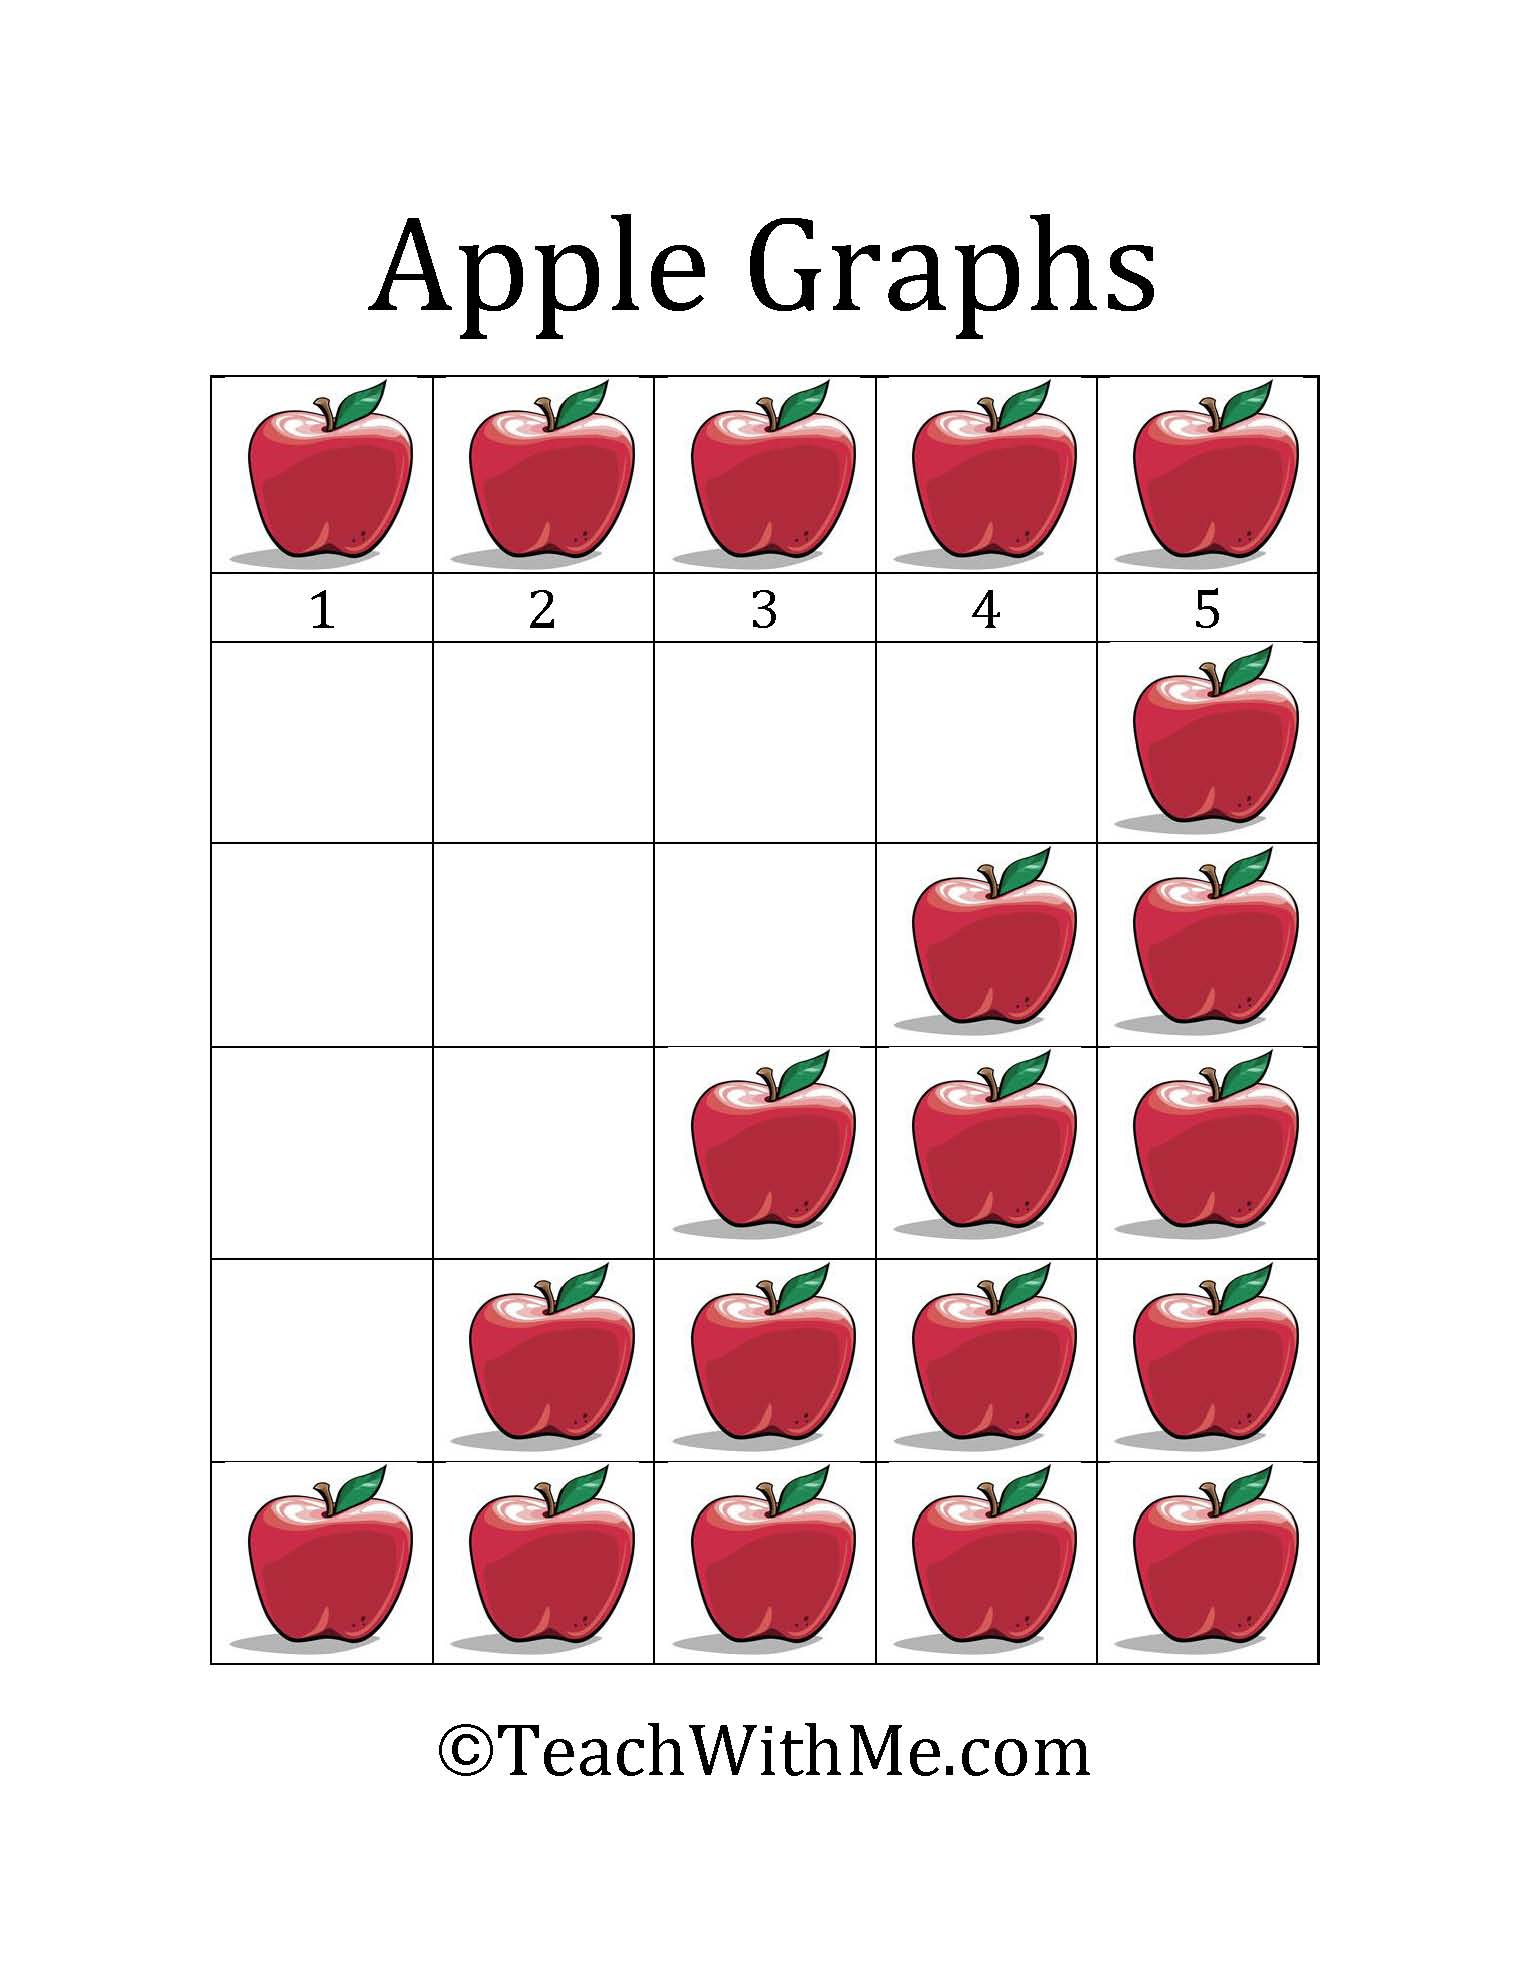 graphing apples, apple graph printables, free apple graphs, apple graph templates, graphing colors of apples, graphing the taste of apples, apple activities, common core state standards for kindergarten, common core state standards for 1st grade, common core apples, graphing activities, graphing apples, graph templates for apples, fraction activities, fraction puzzles, fraction posters, free fraction anchor charts, fraction lessons, fraction activities with apple pie, fraction activities with apples, math centers, math crafts, math bulletin boards, bulletin boards for September, apple bulletin boards, apple booklets, apple fractions, fraction booklets, free fraction posters, fraction games, apple games, spinner template, spinner printable, spinner pattern, free apple games, apple printables, Daily 5 activities for September, apple daily 5 activities, word work for apples, word work for fall